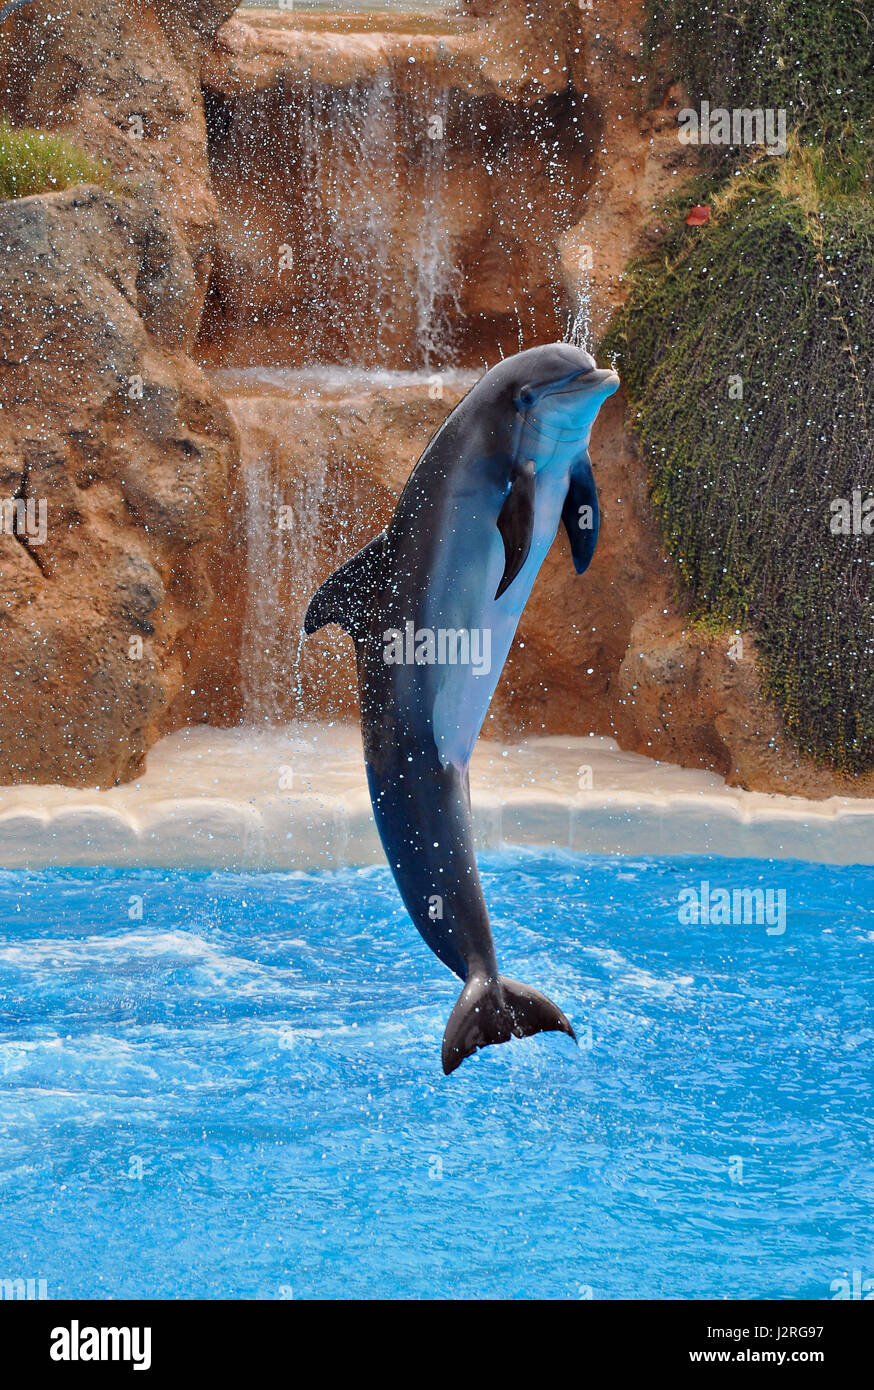 Animals photography. Young dolphin acrobat demonstrate their skills. - Stock Image